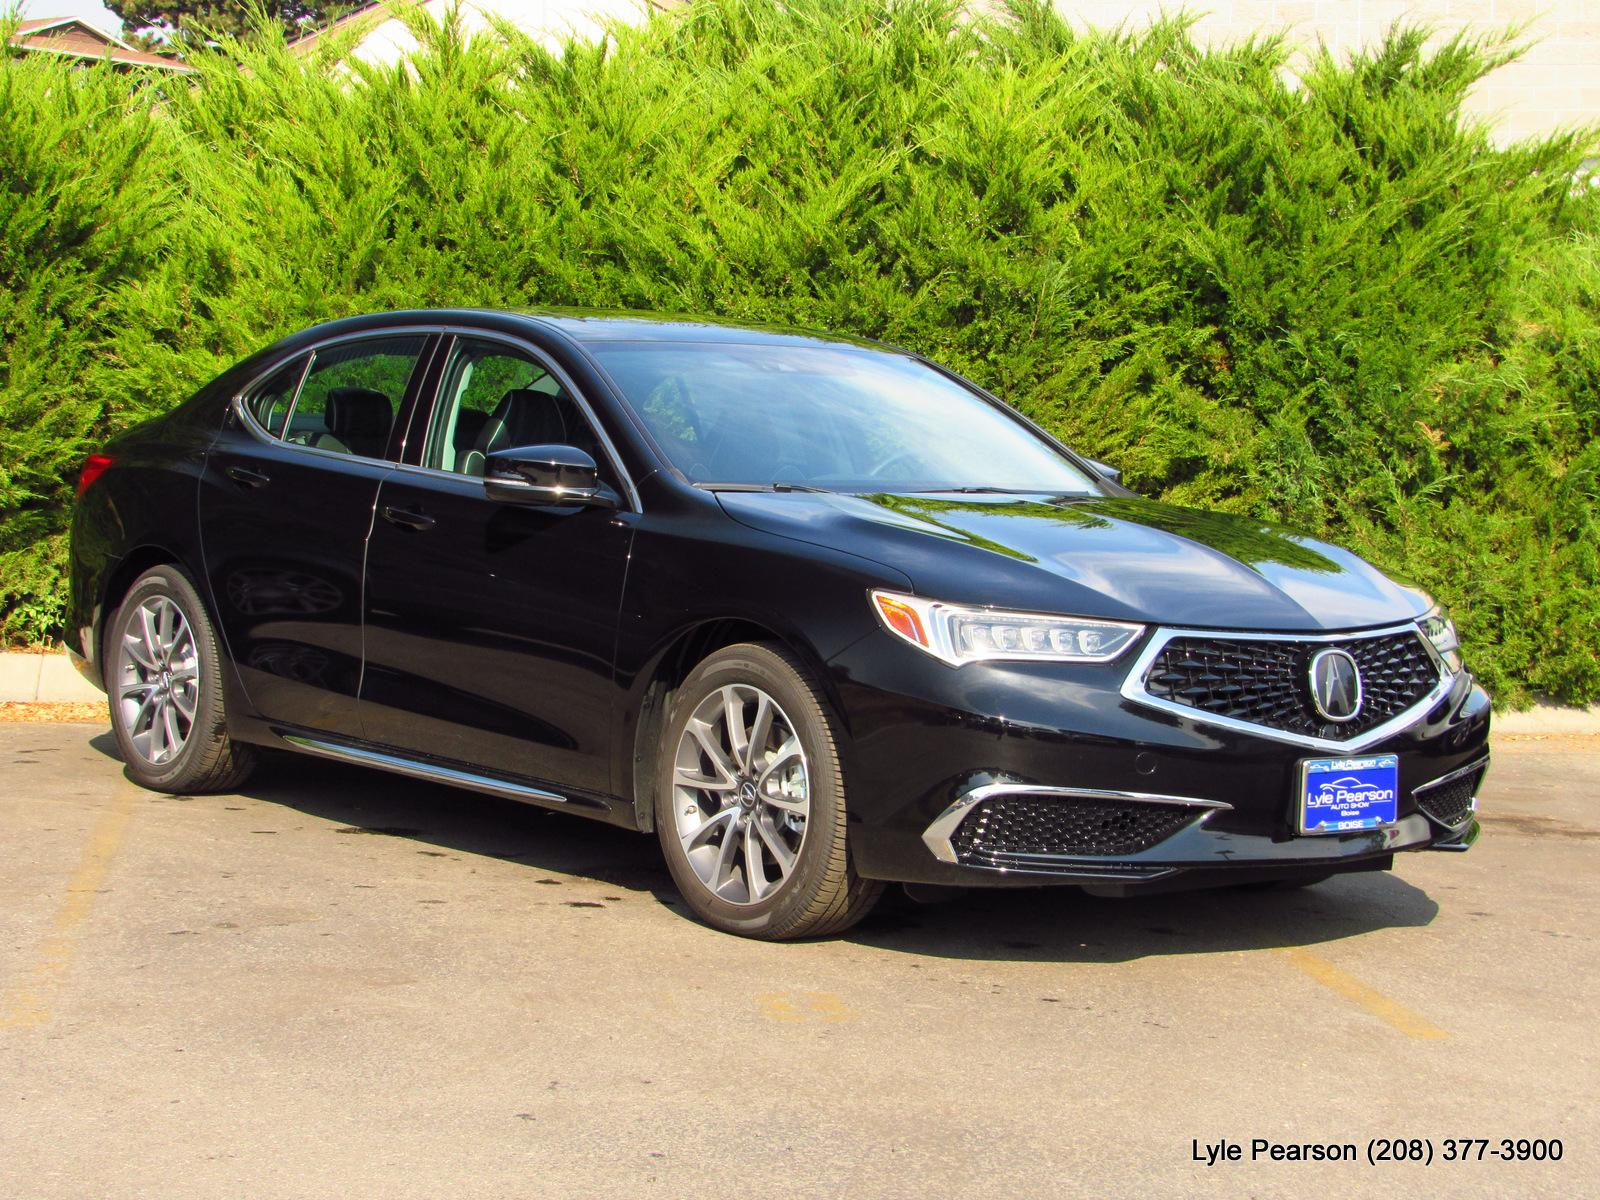 New 2019 Acura TLX 3 5L FWD w Technology Pkg 4dr Car in Boise